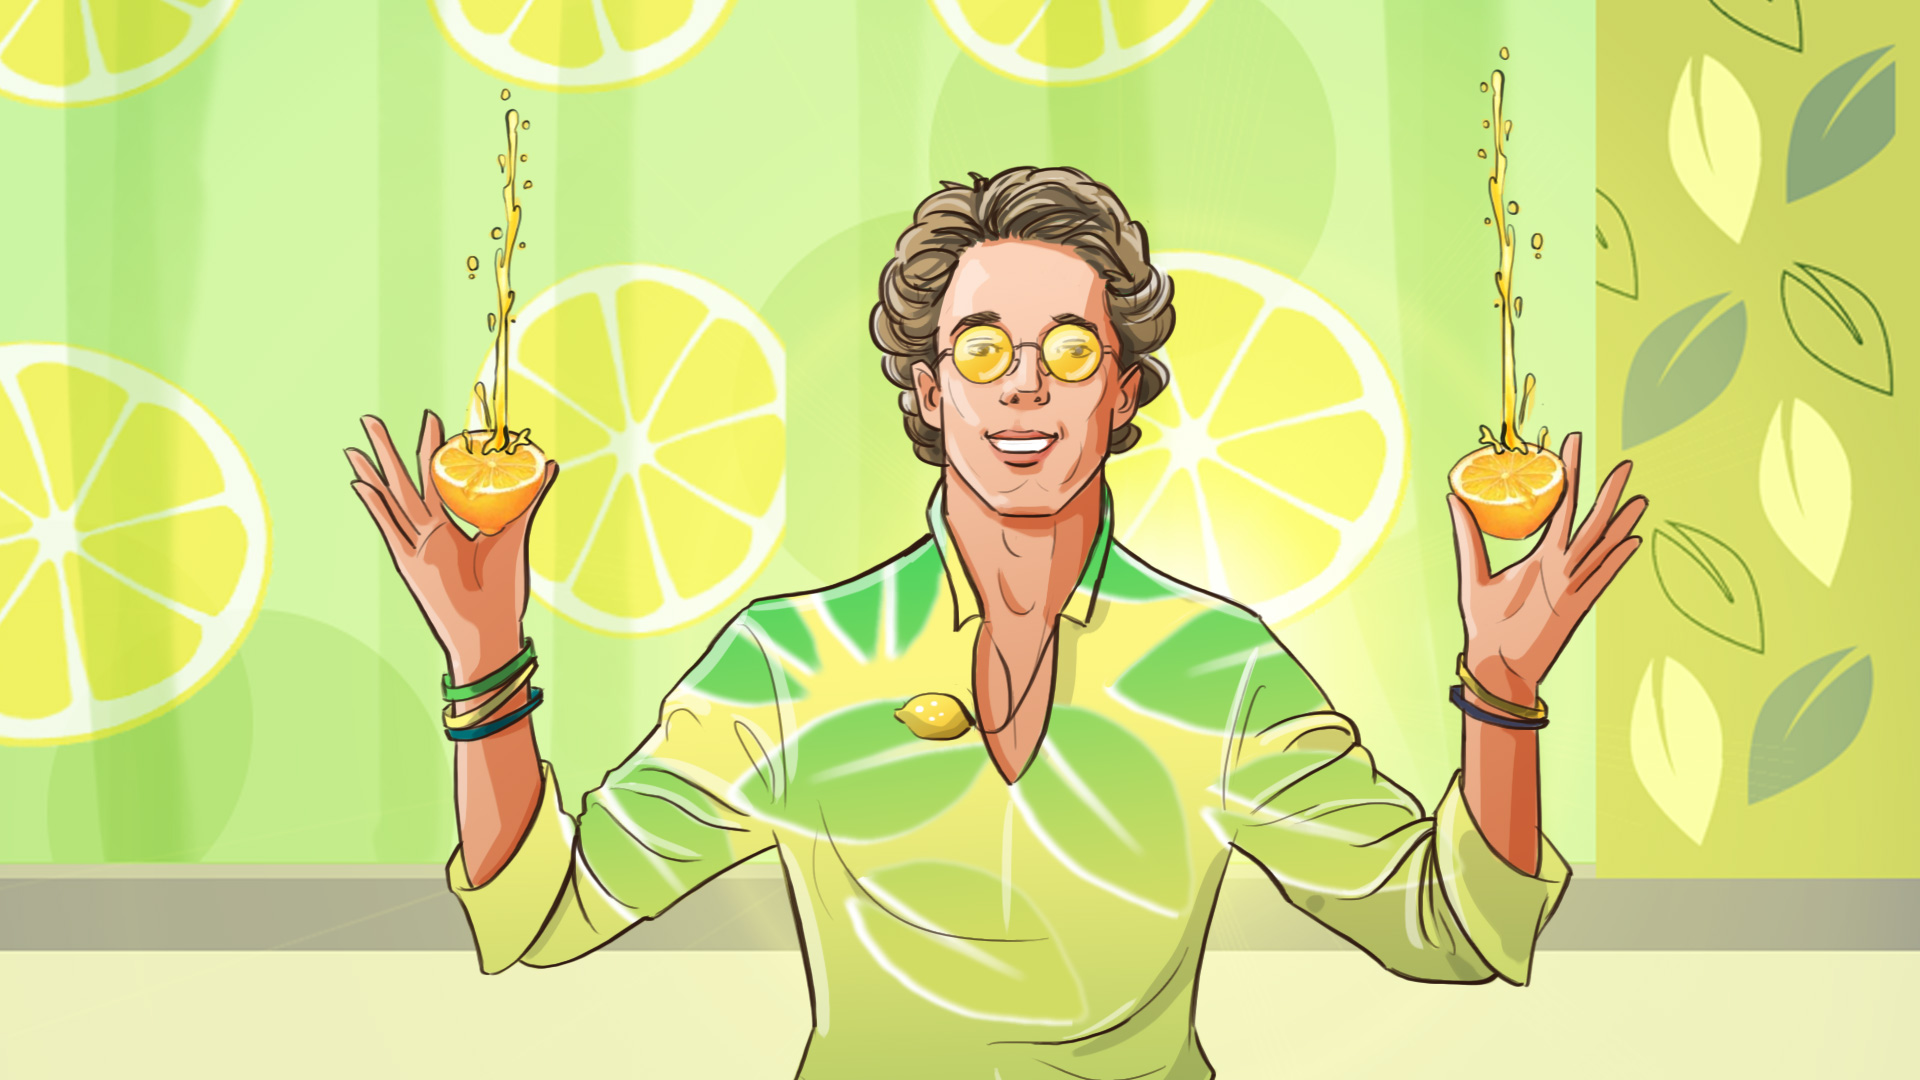 man lemon smile illustration advertising